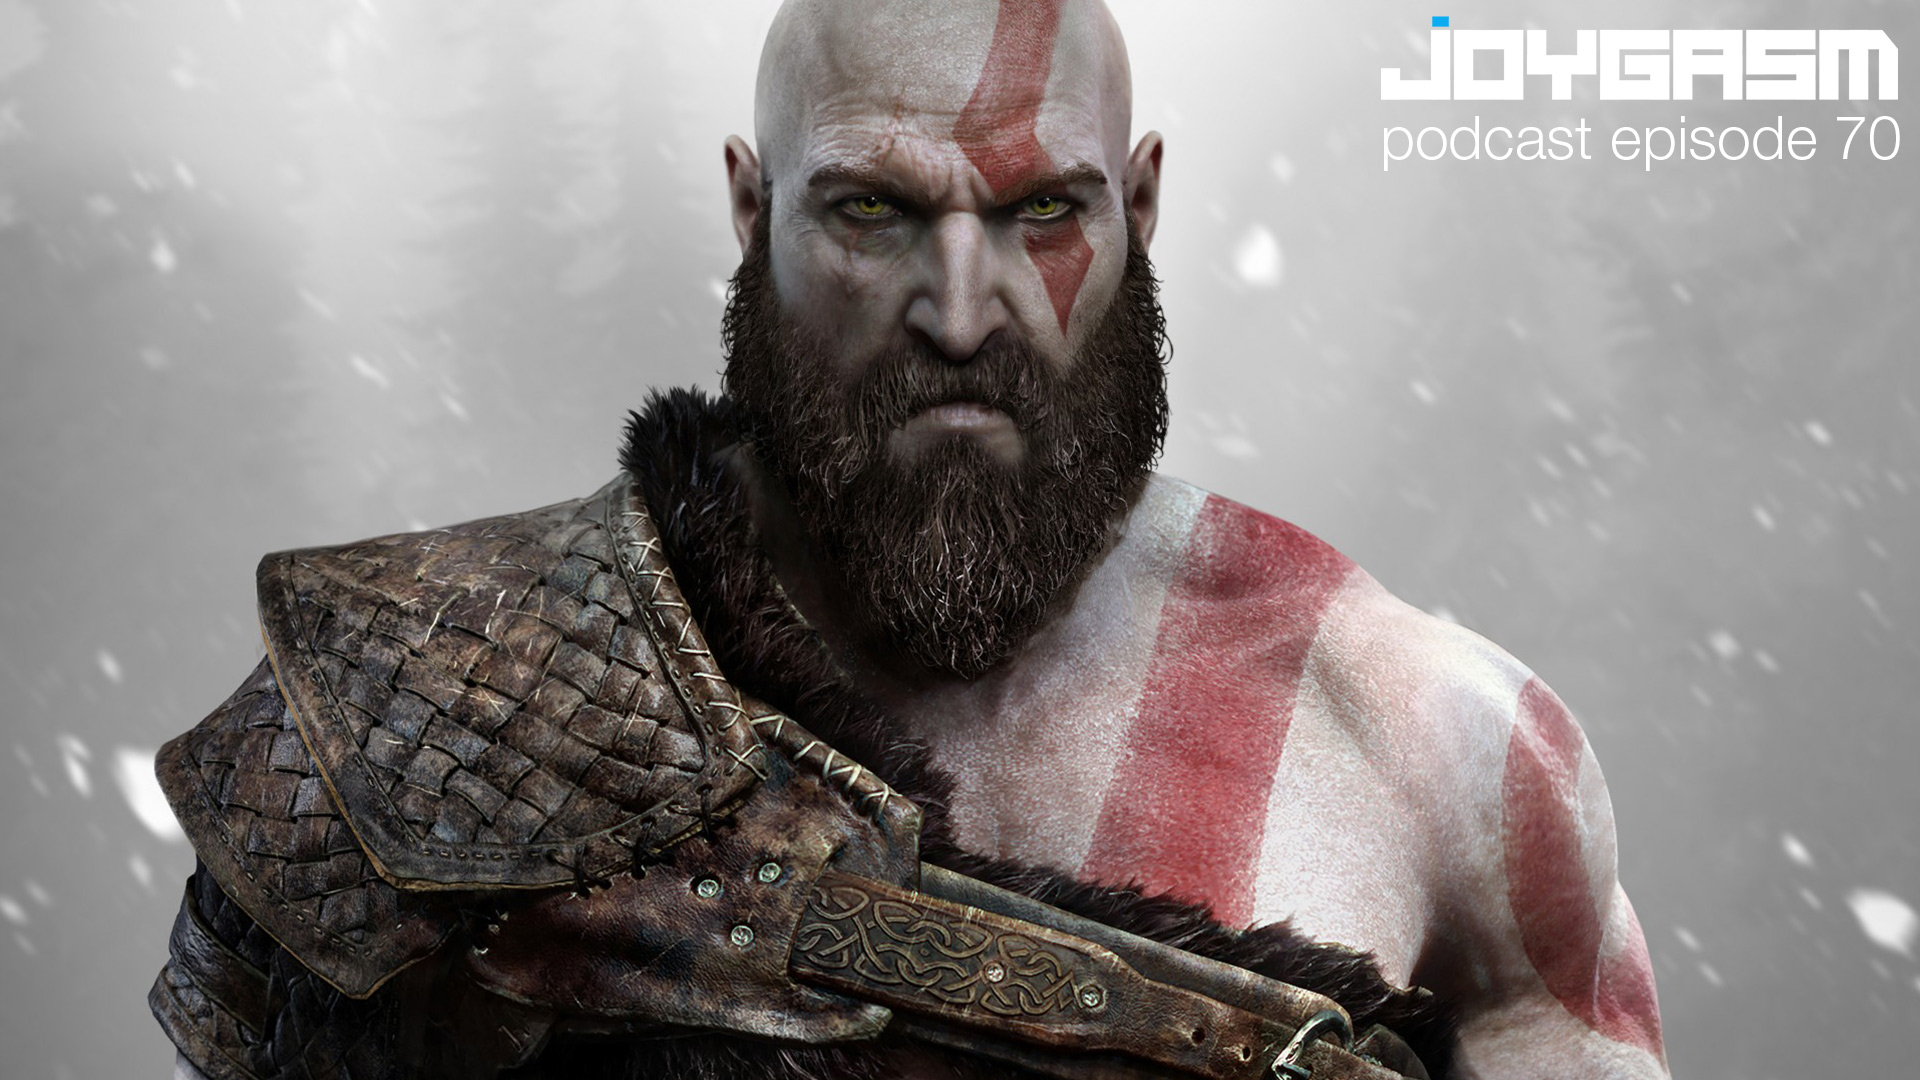 Ep. 70: God Of War Play Impressions & More